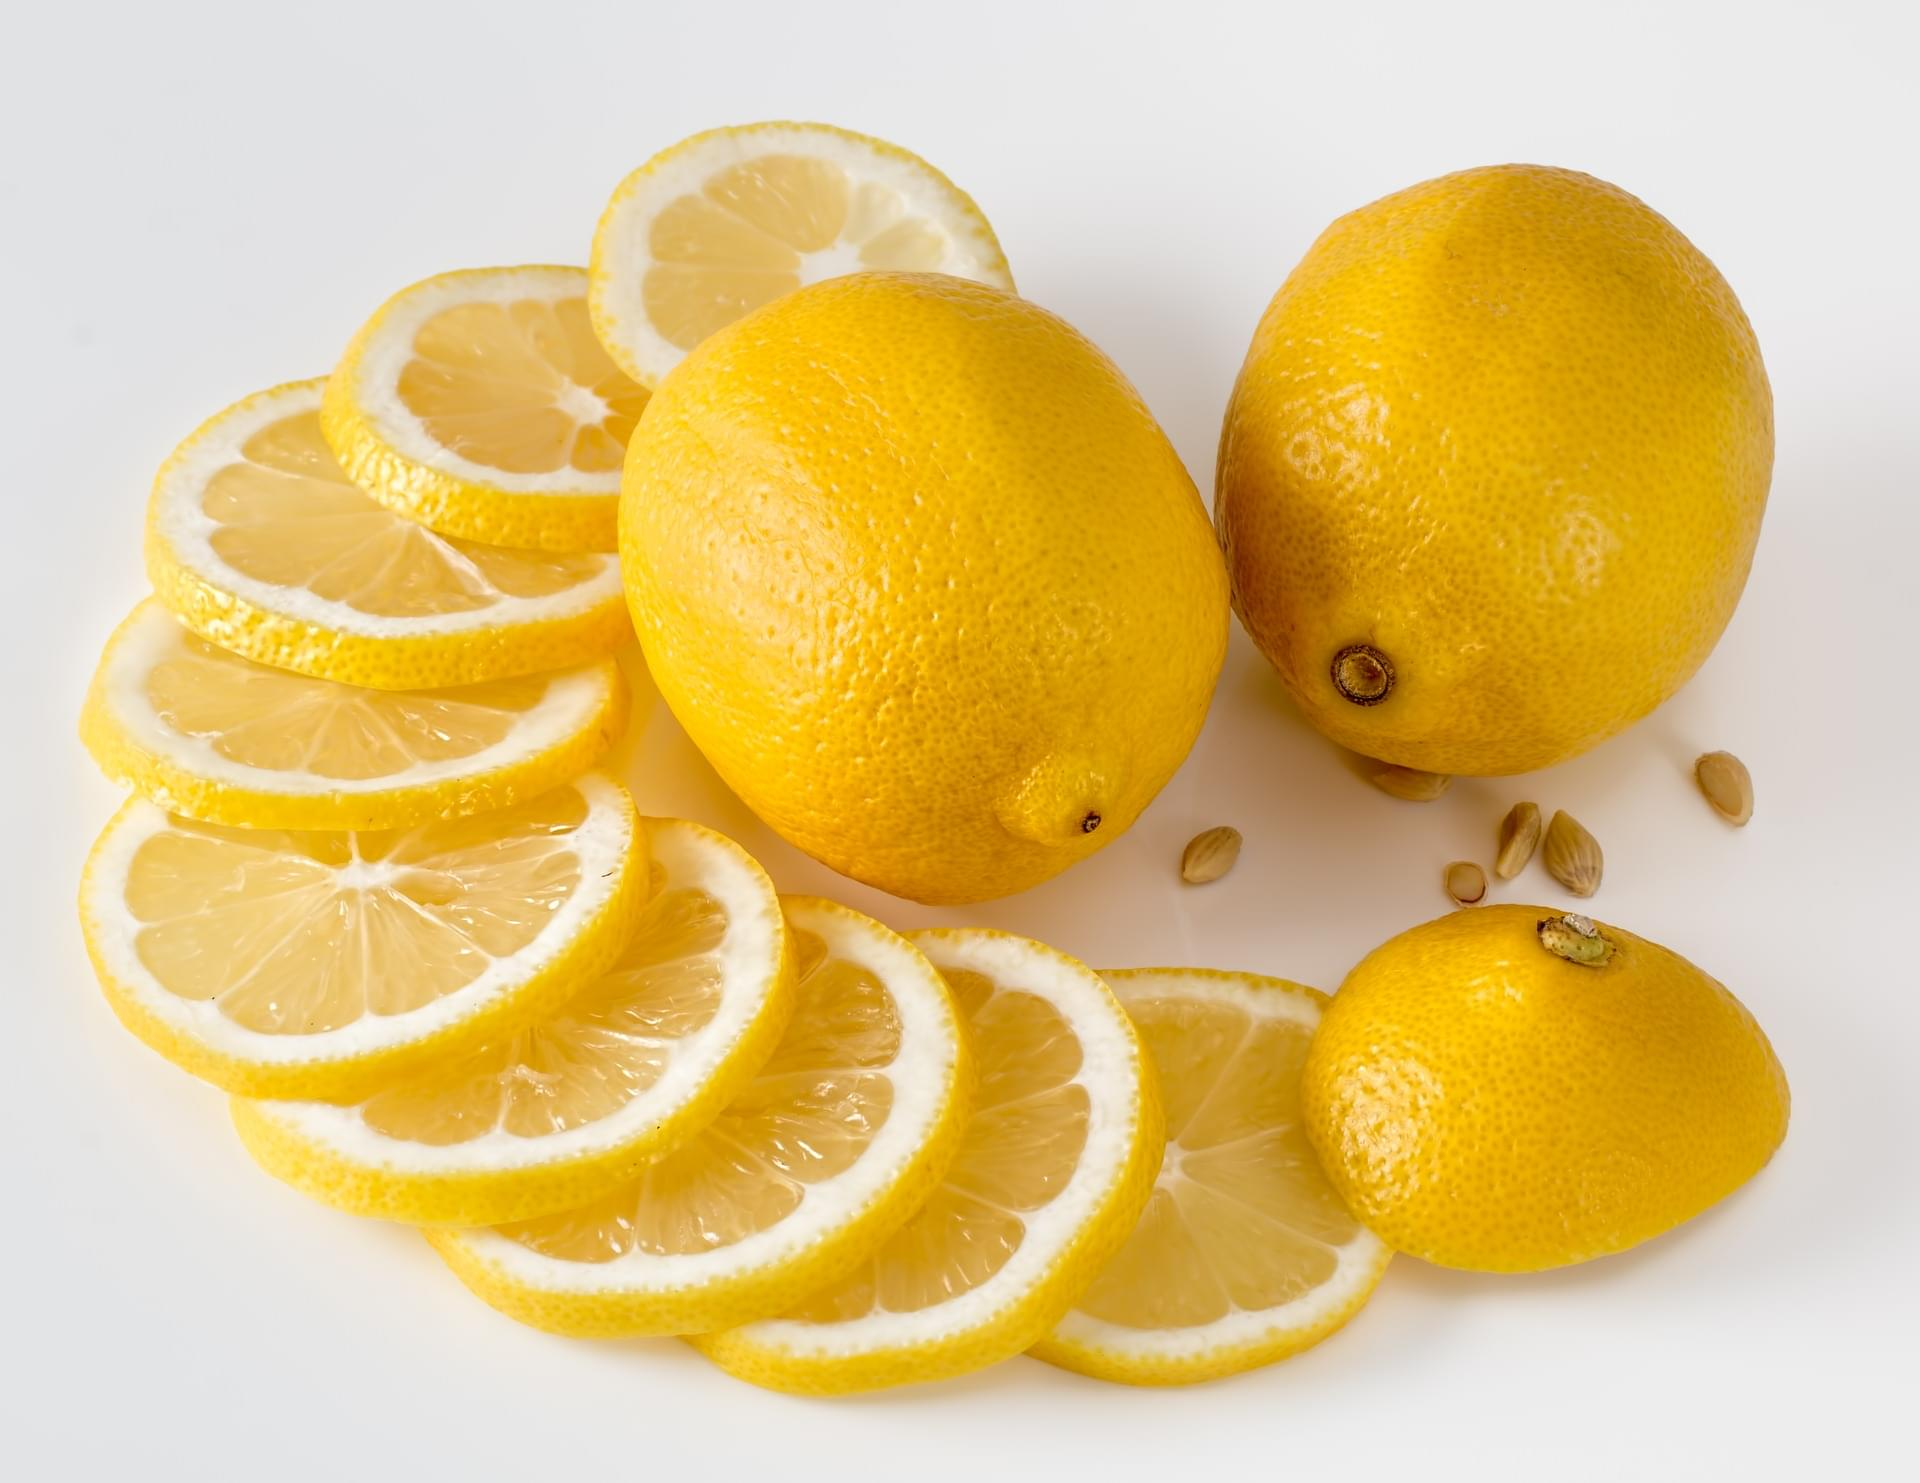 Smelling Lemons Makes You Feel Slimmer